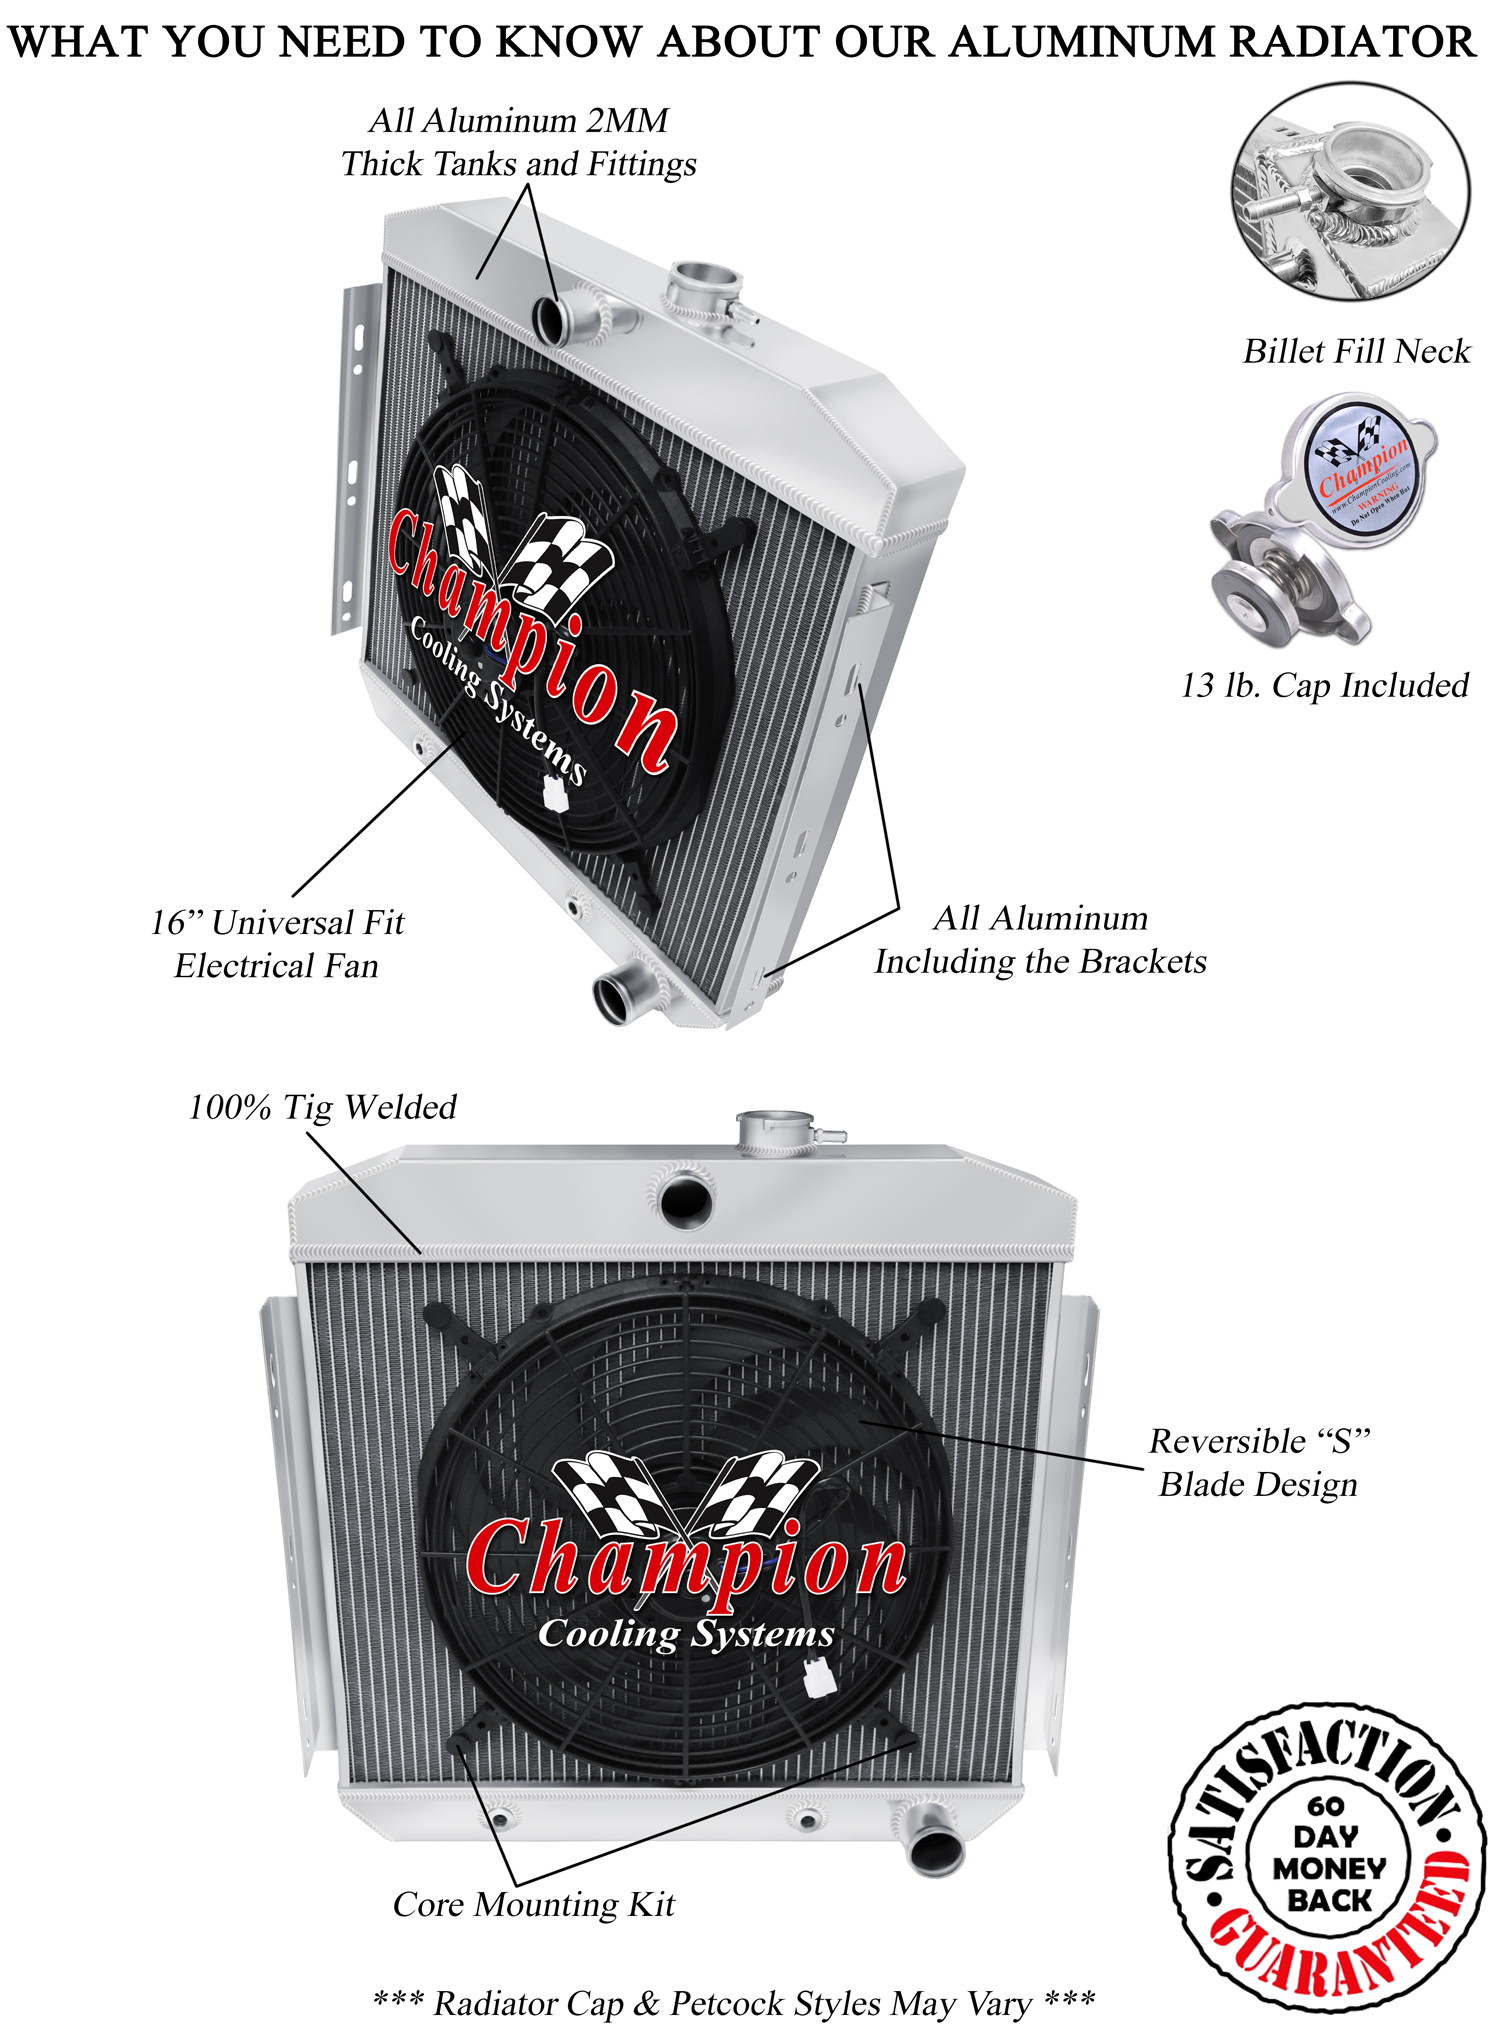 https://www.championcooling.com/photos/Photos%20White/With%20Fans/Combos/5056/5056_16_white_Diagram_Champion.jpg